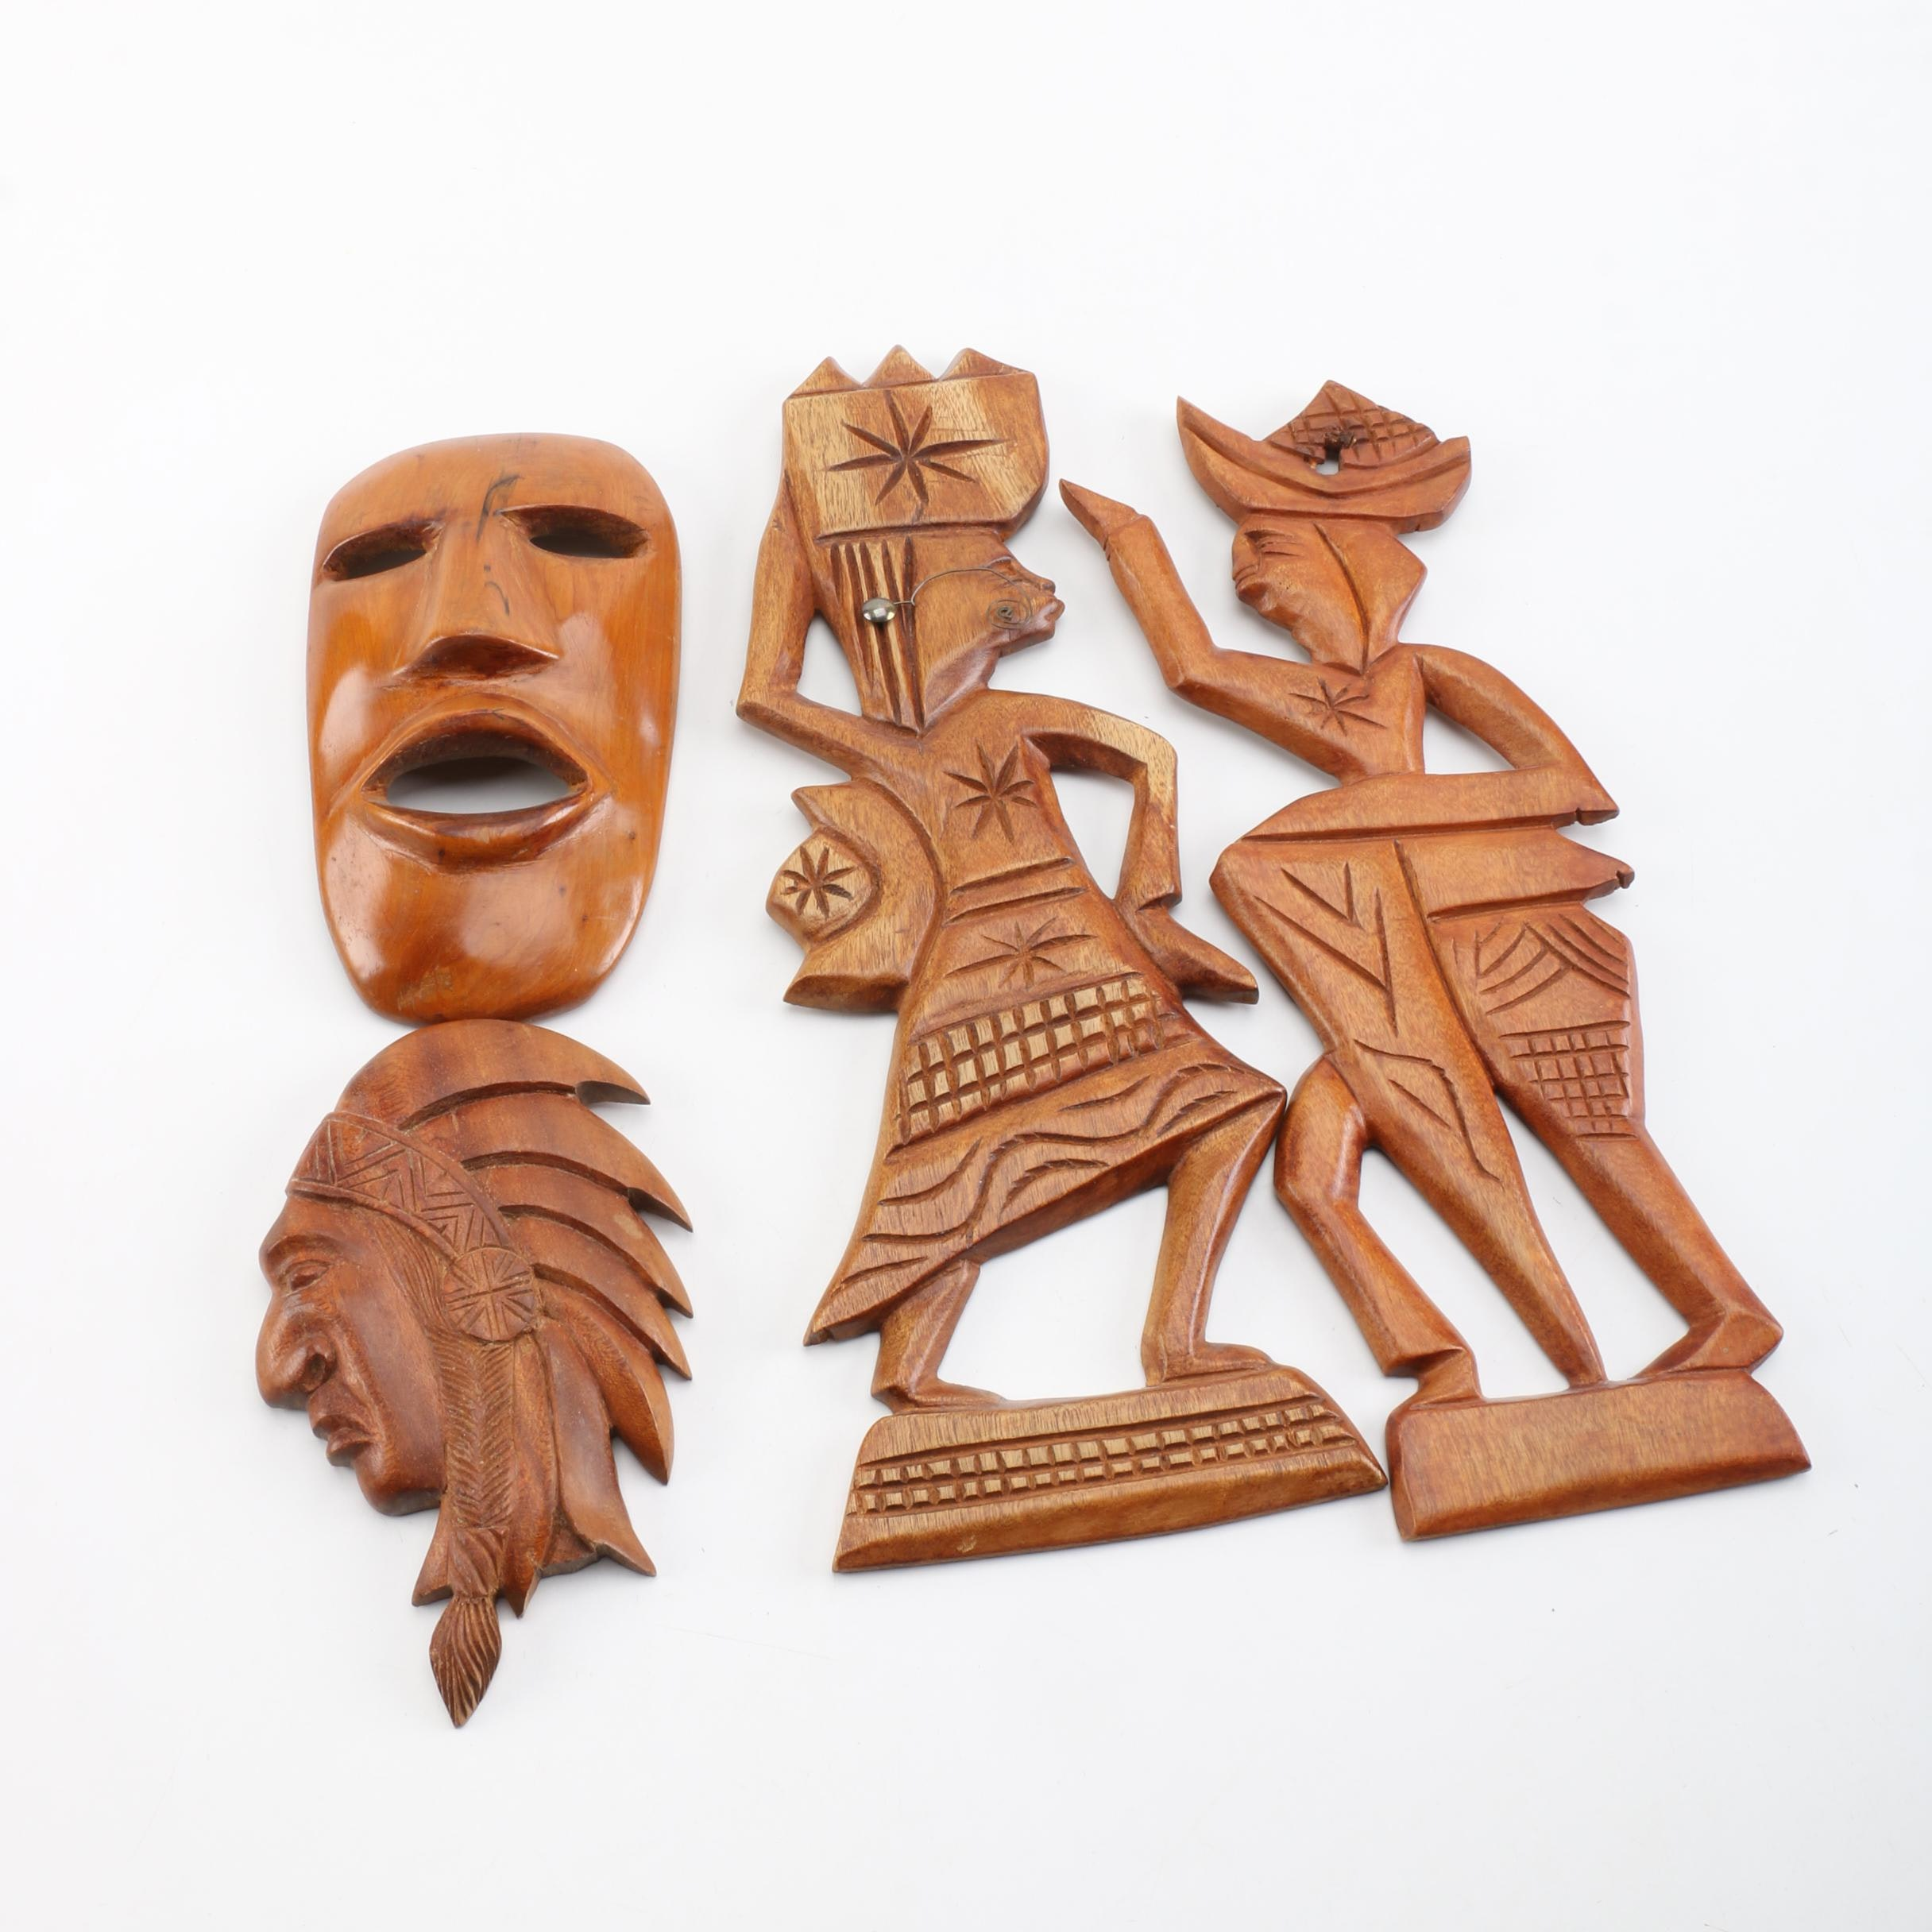 Carved Wood Plaques and Masks